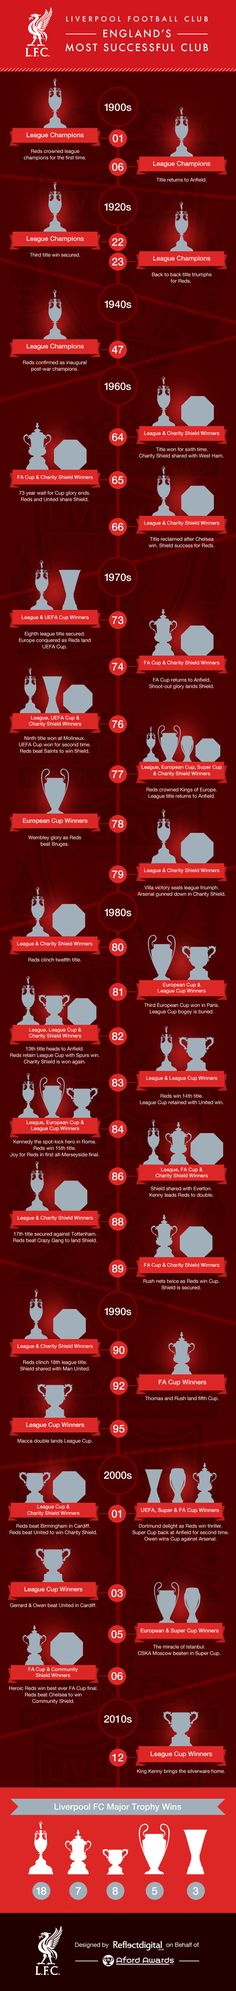 History of Liverpool Football Club